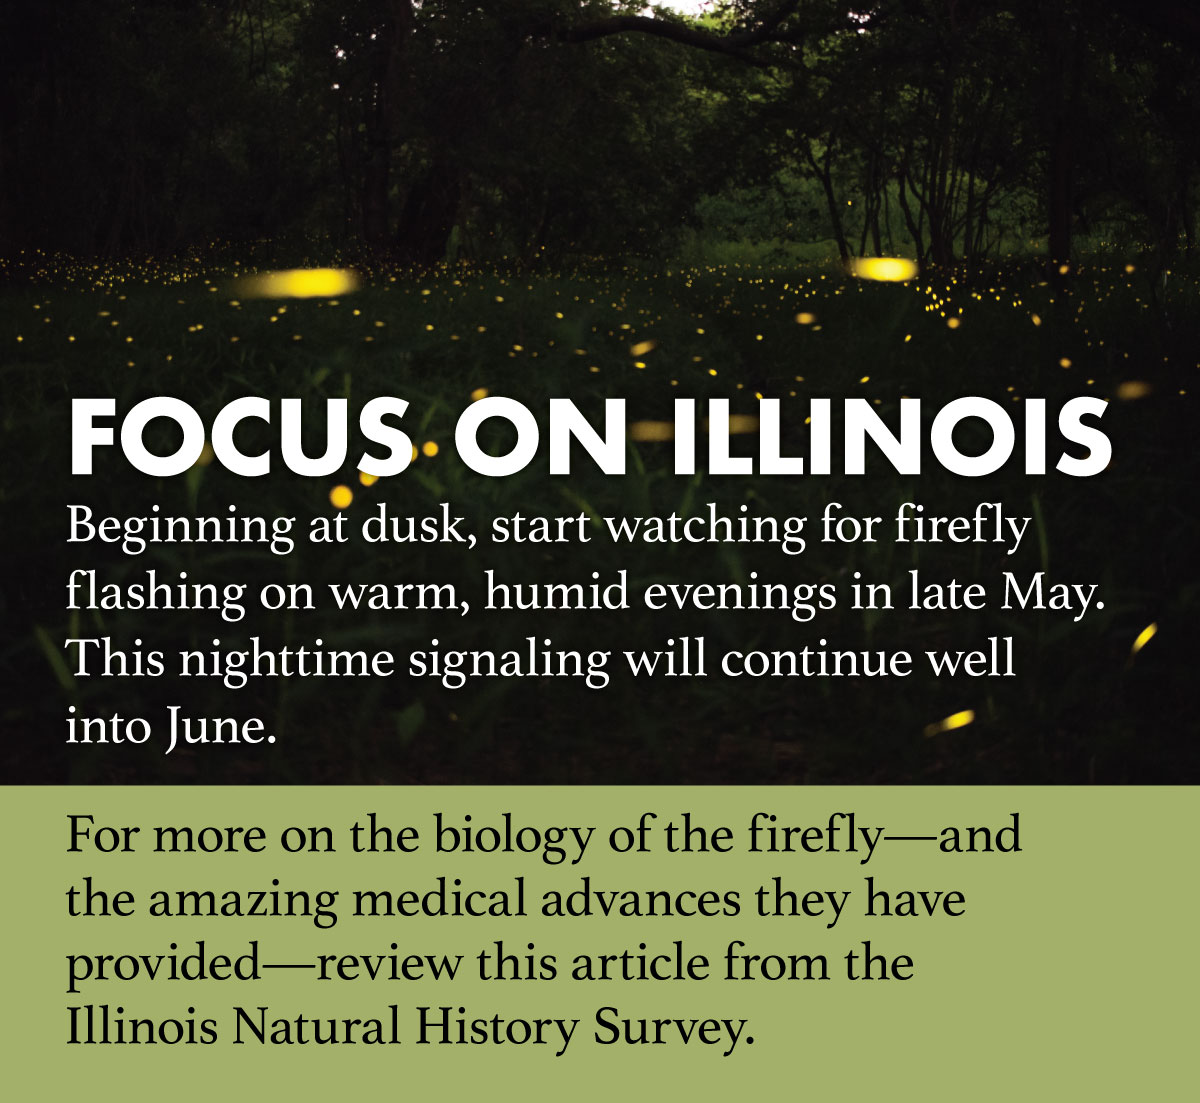 A graphic with a photo at dusk of fireflies flashing over a grassland with trees. The text indicates when to watch for firefly flashing in Illinois and where to go for more information.